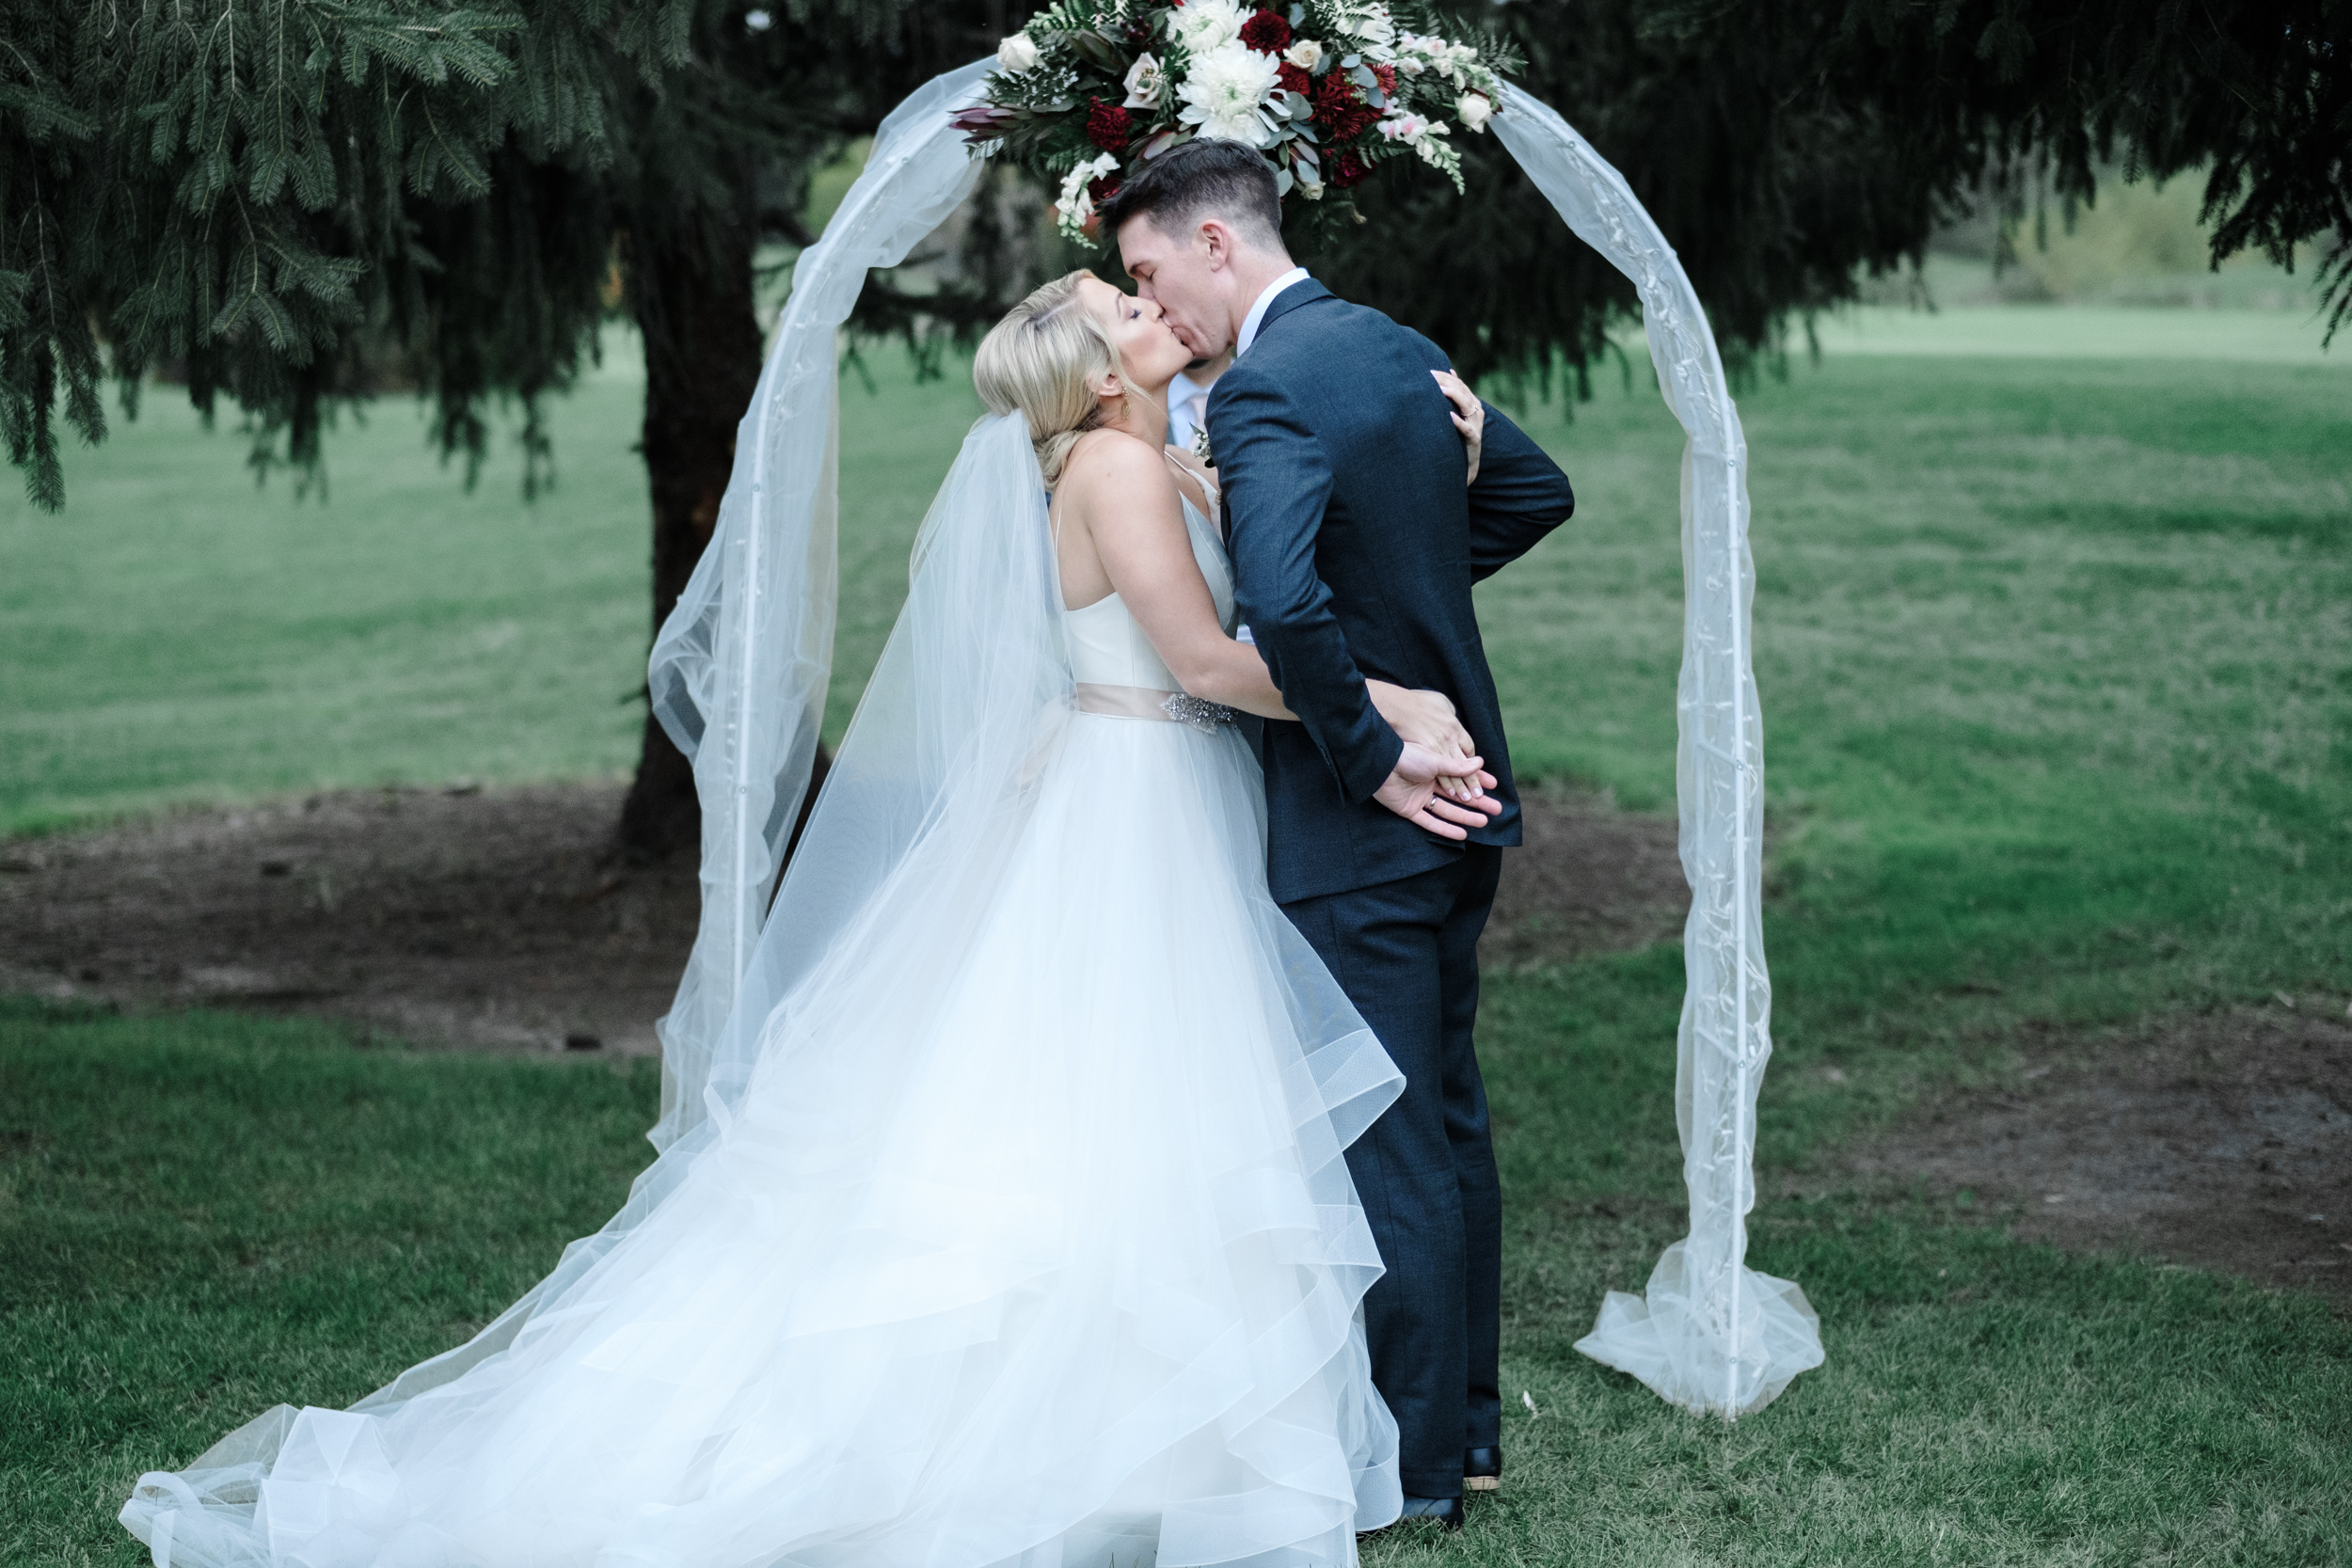 Bride and groom first kiss at outdoor ceremony at Rockford Bank and Trust Pavilion.